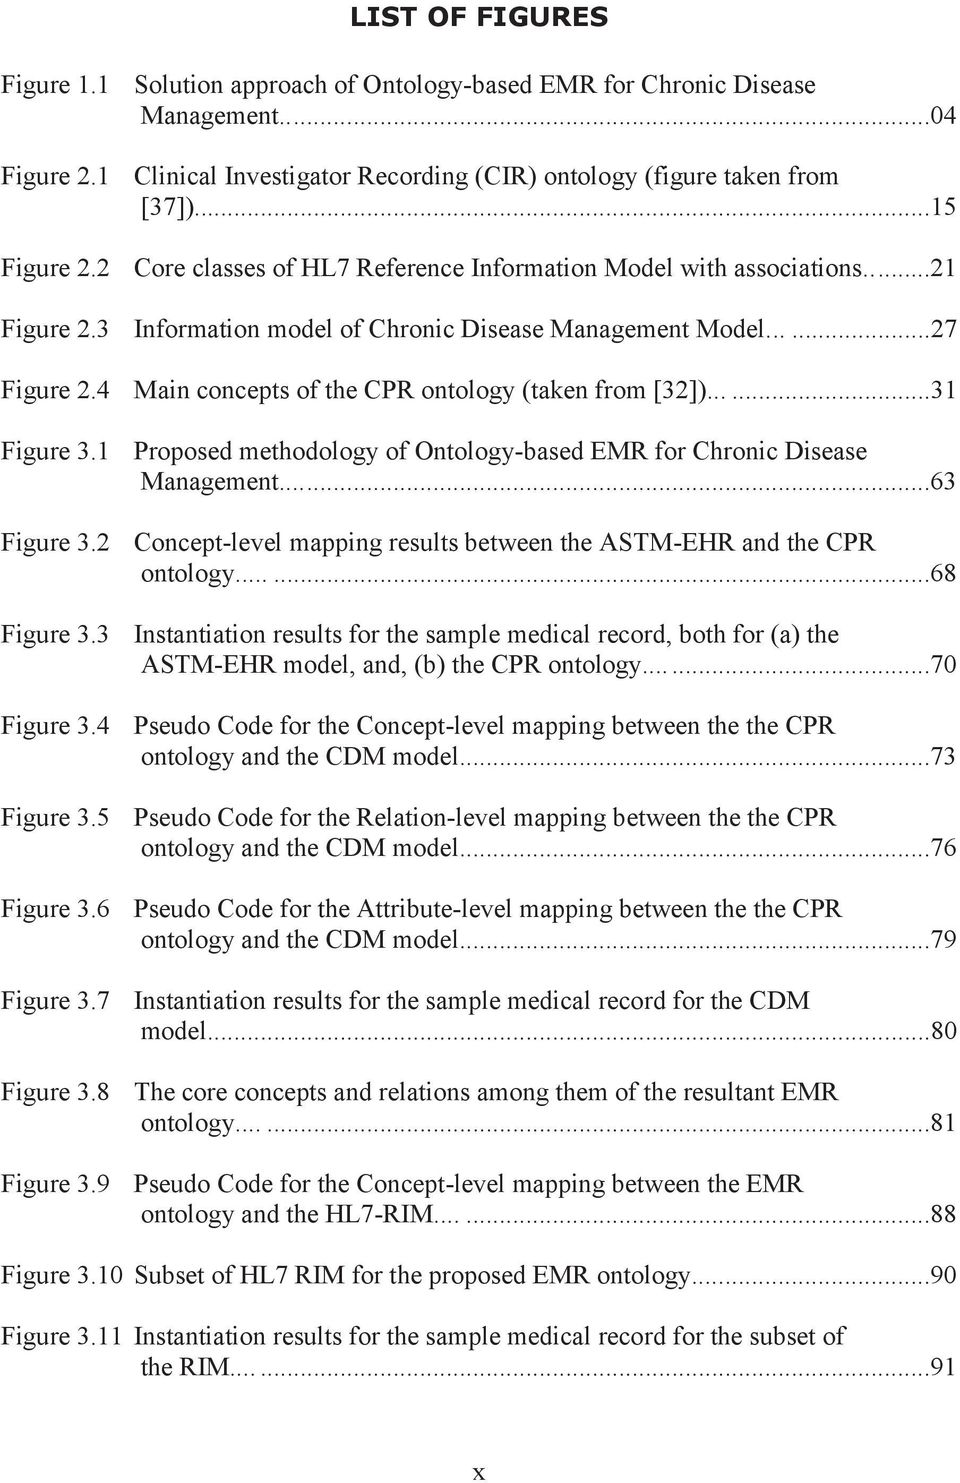 4 Main concepts of the CPR ontology (taken from [32])......31 Figure 3.1 Figure 3.2 Figure 3.3 Figure 3.4 Proposed methodology of Ontology-based EMR for Chronic Disease Management.